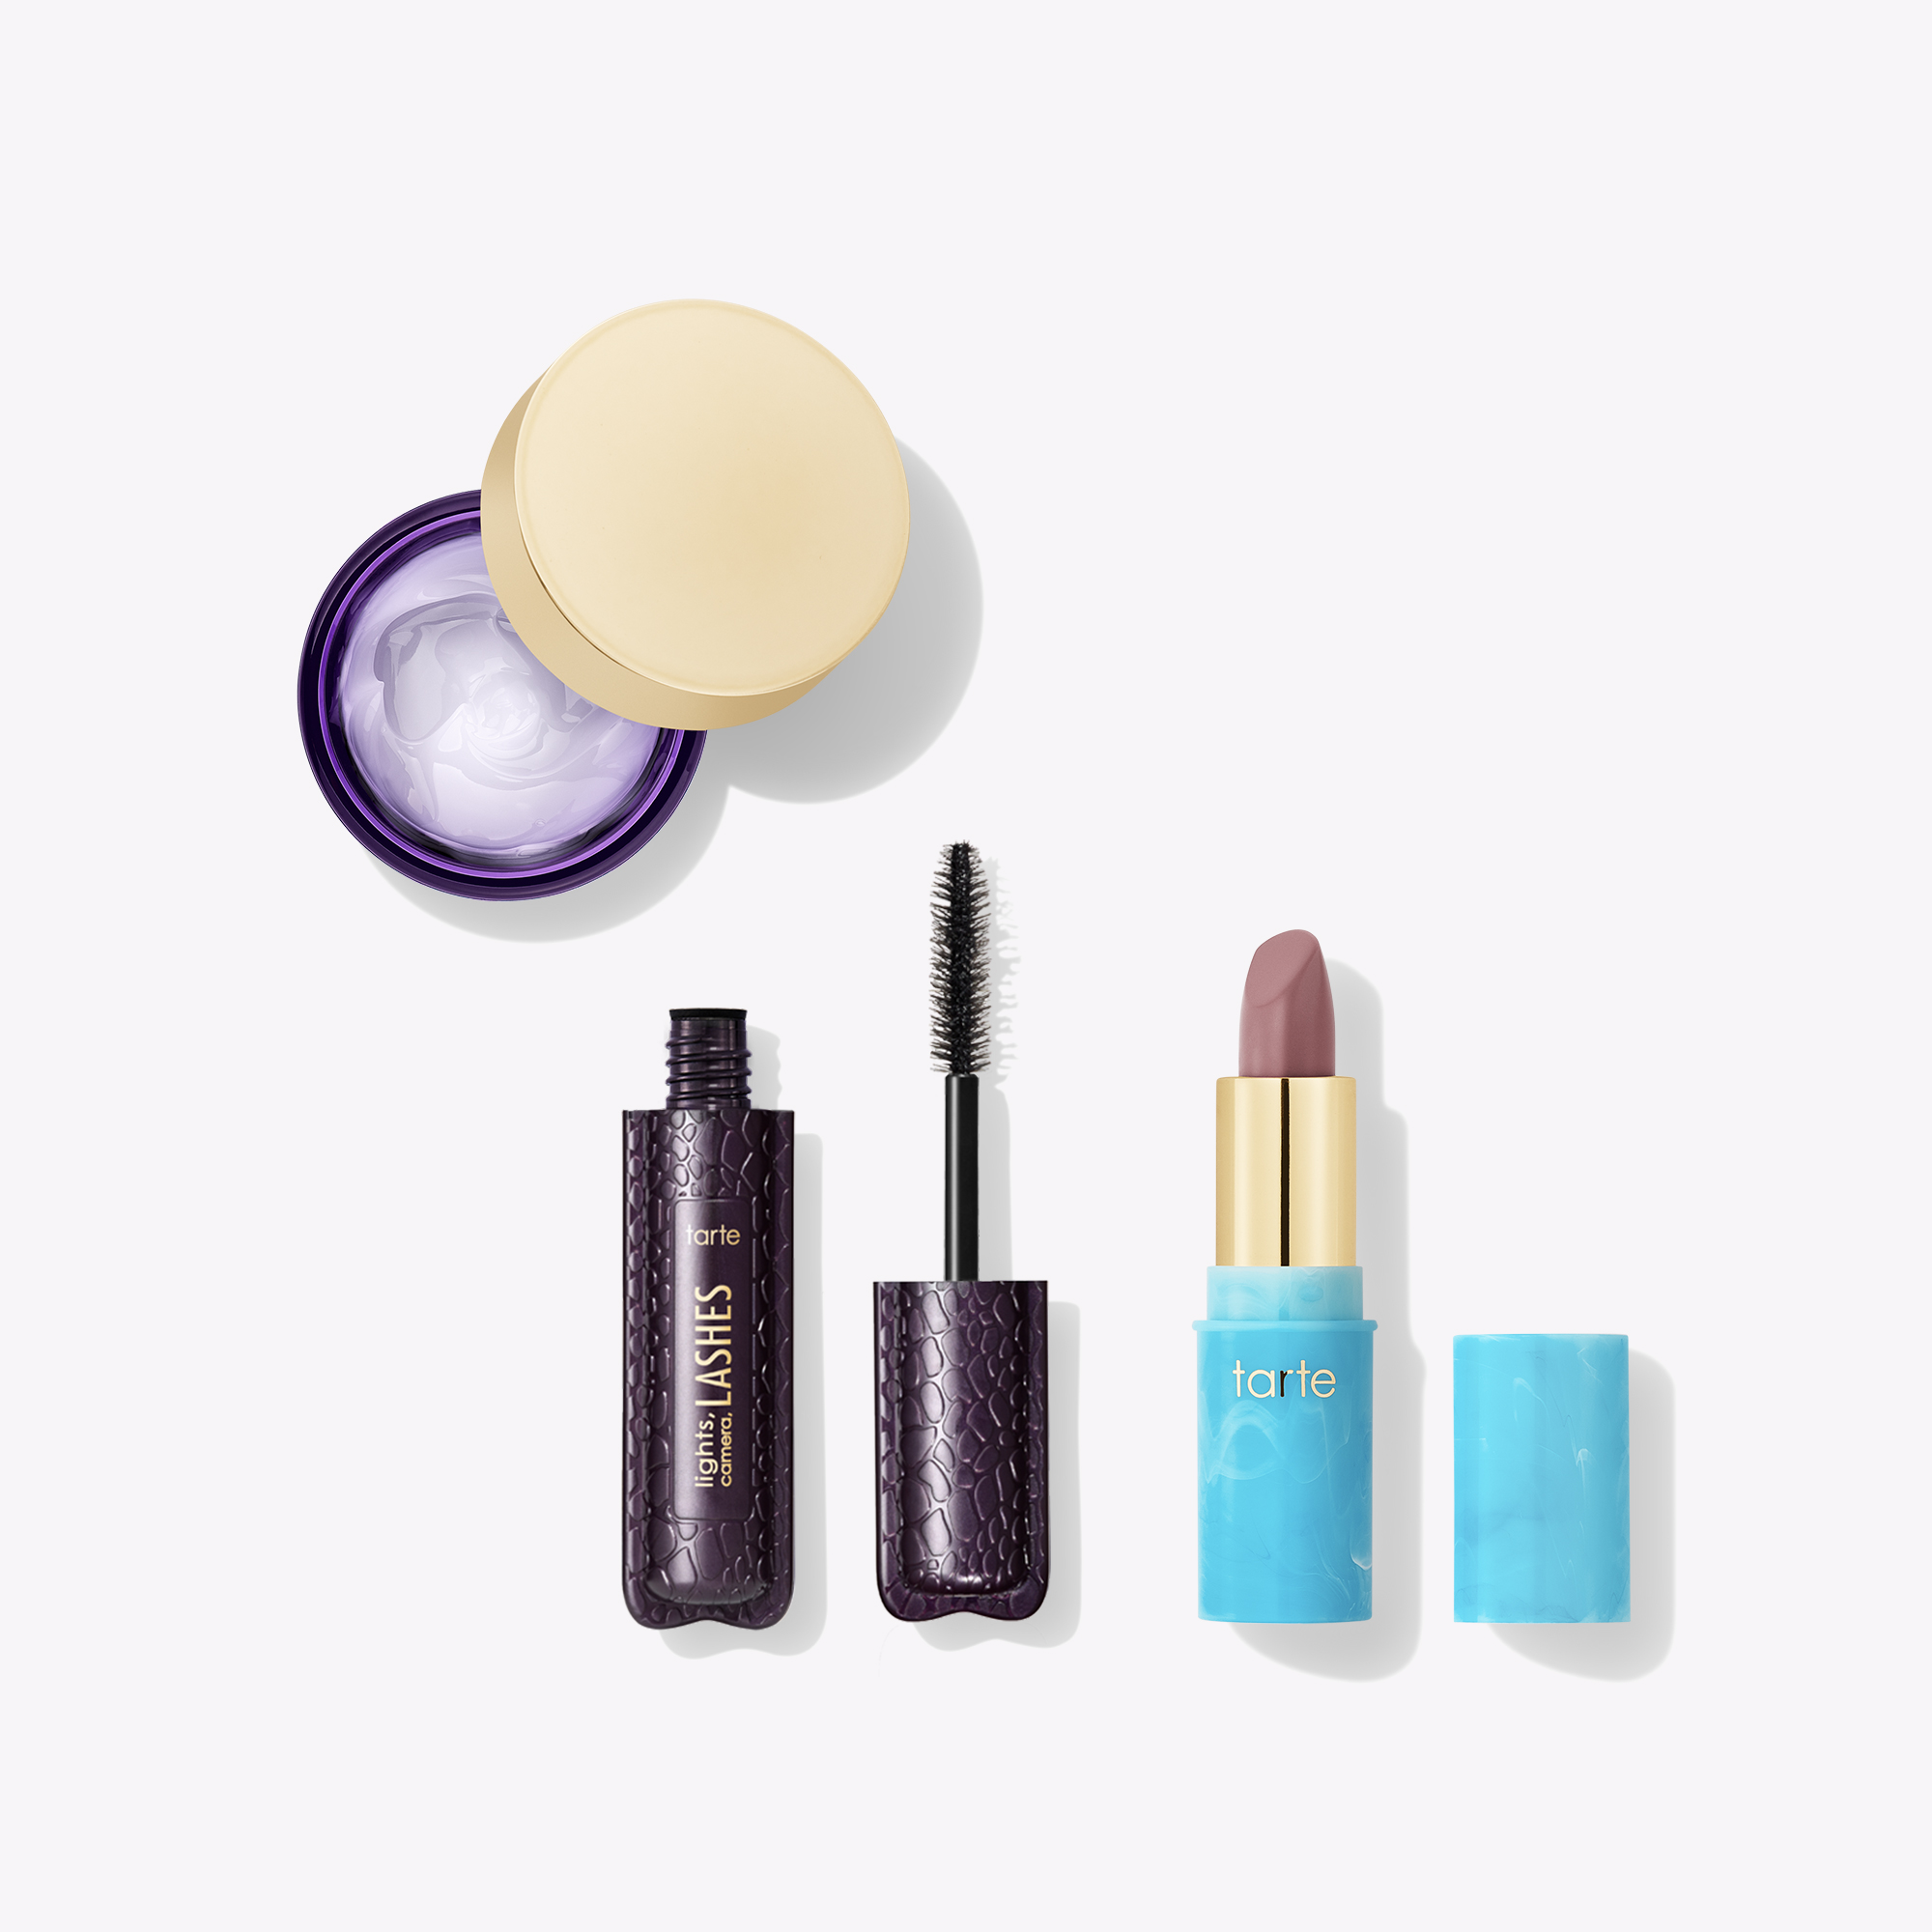 70a9556a045 Promotions. girl boss goodies skin & color set girl boss goodies skin &  color set